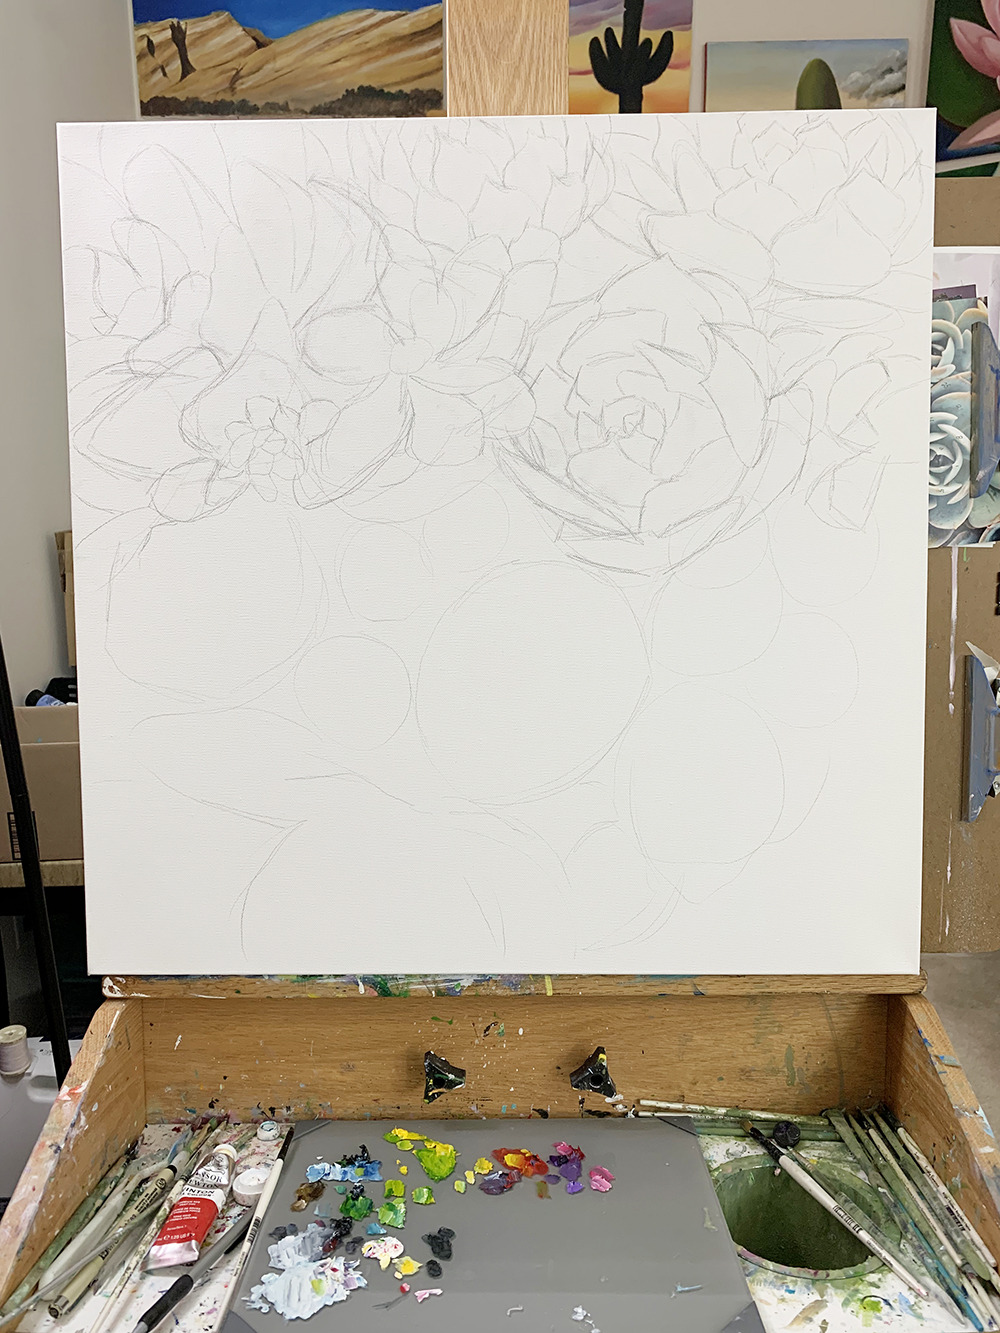 Work in progress - succulent garden painting on easel. First step: Drawing it out.